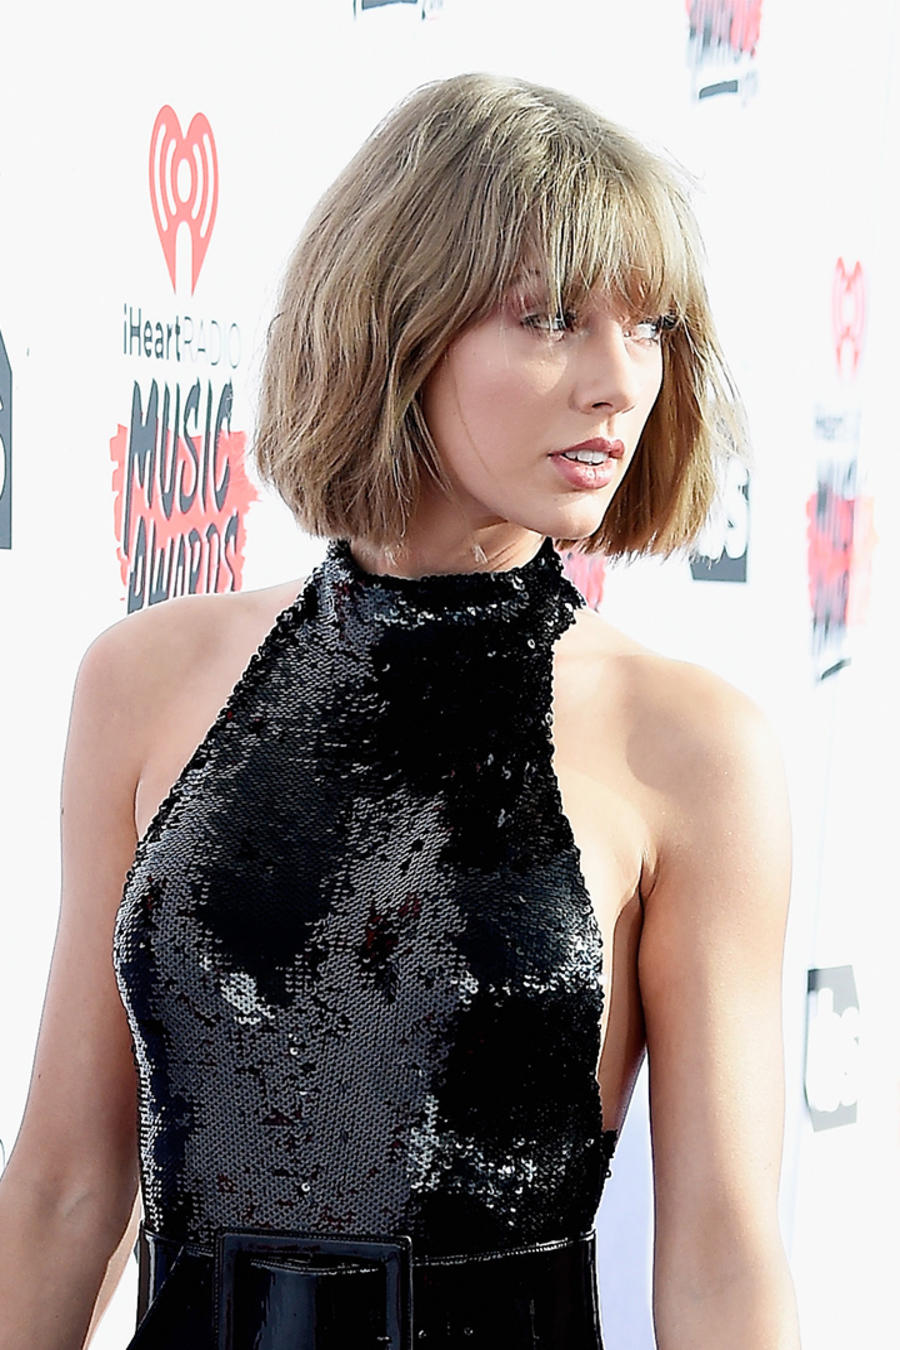 Taylor Swift at The iHeartRadio Music Awards - Red Carpet